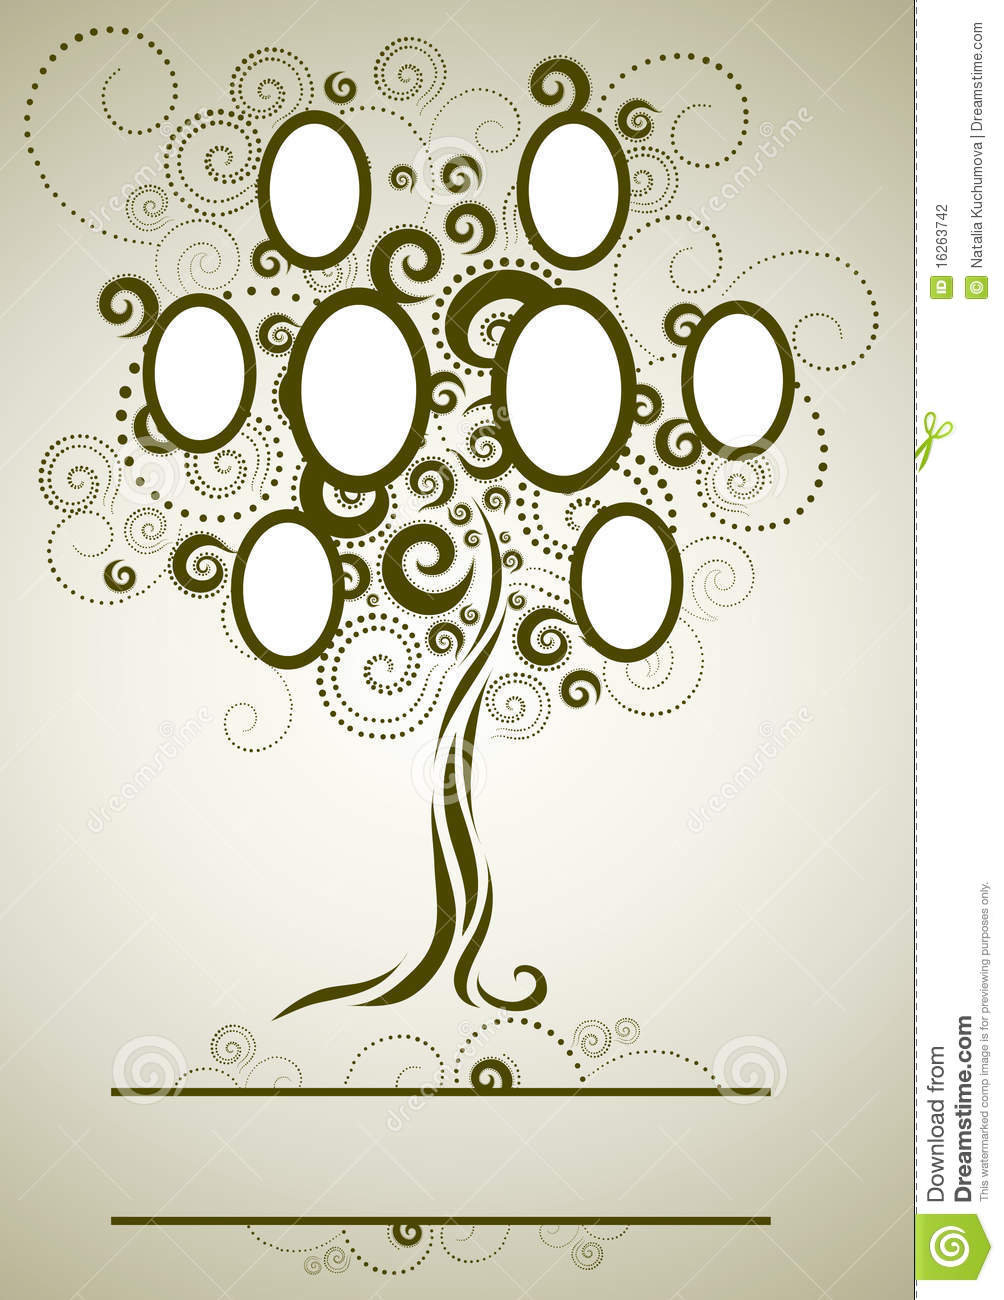 free family tree designs - Family Tree Design Ideas